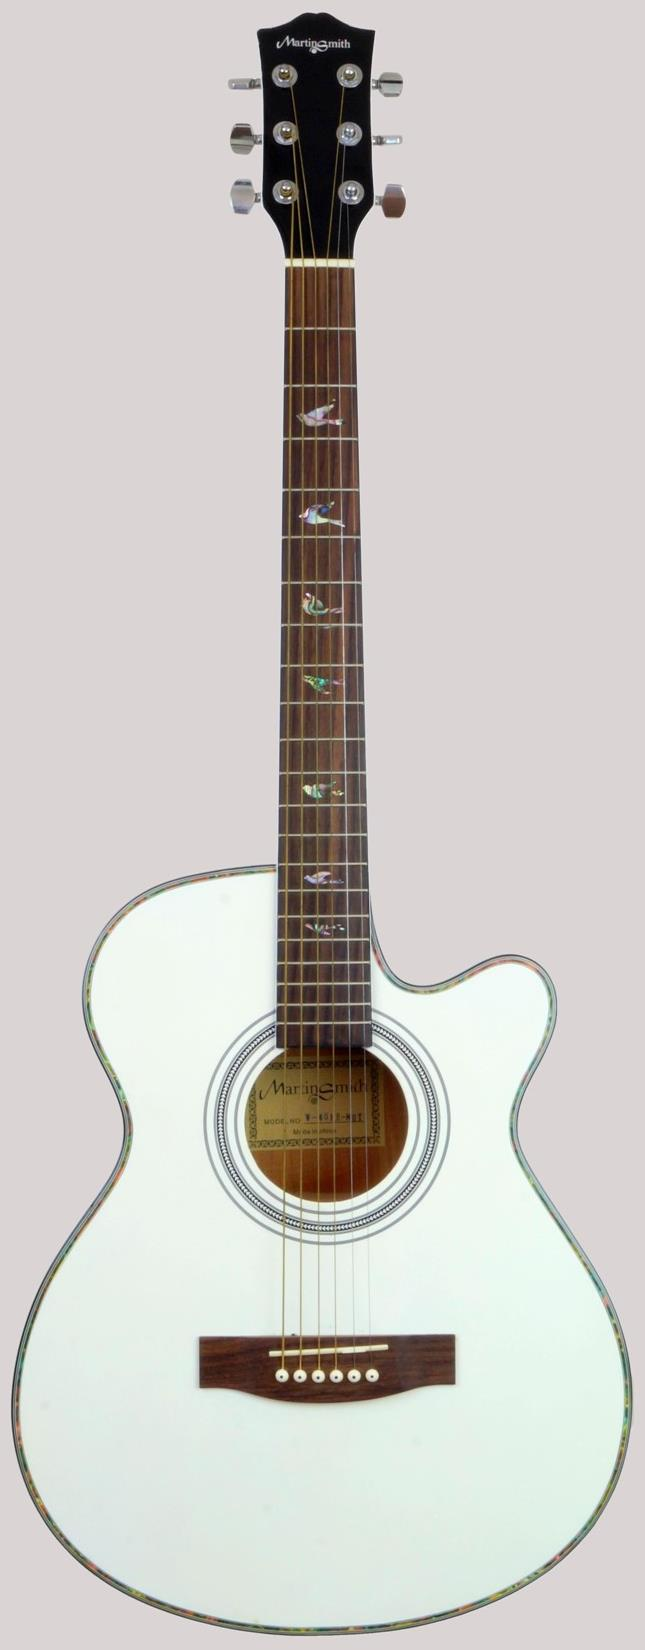 Martin Smith Cutaway Electro-Acoustic Guitar